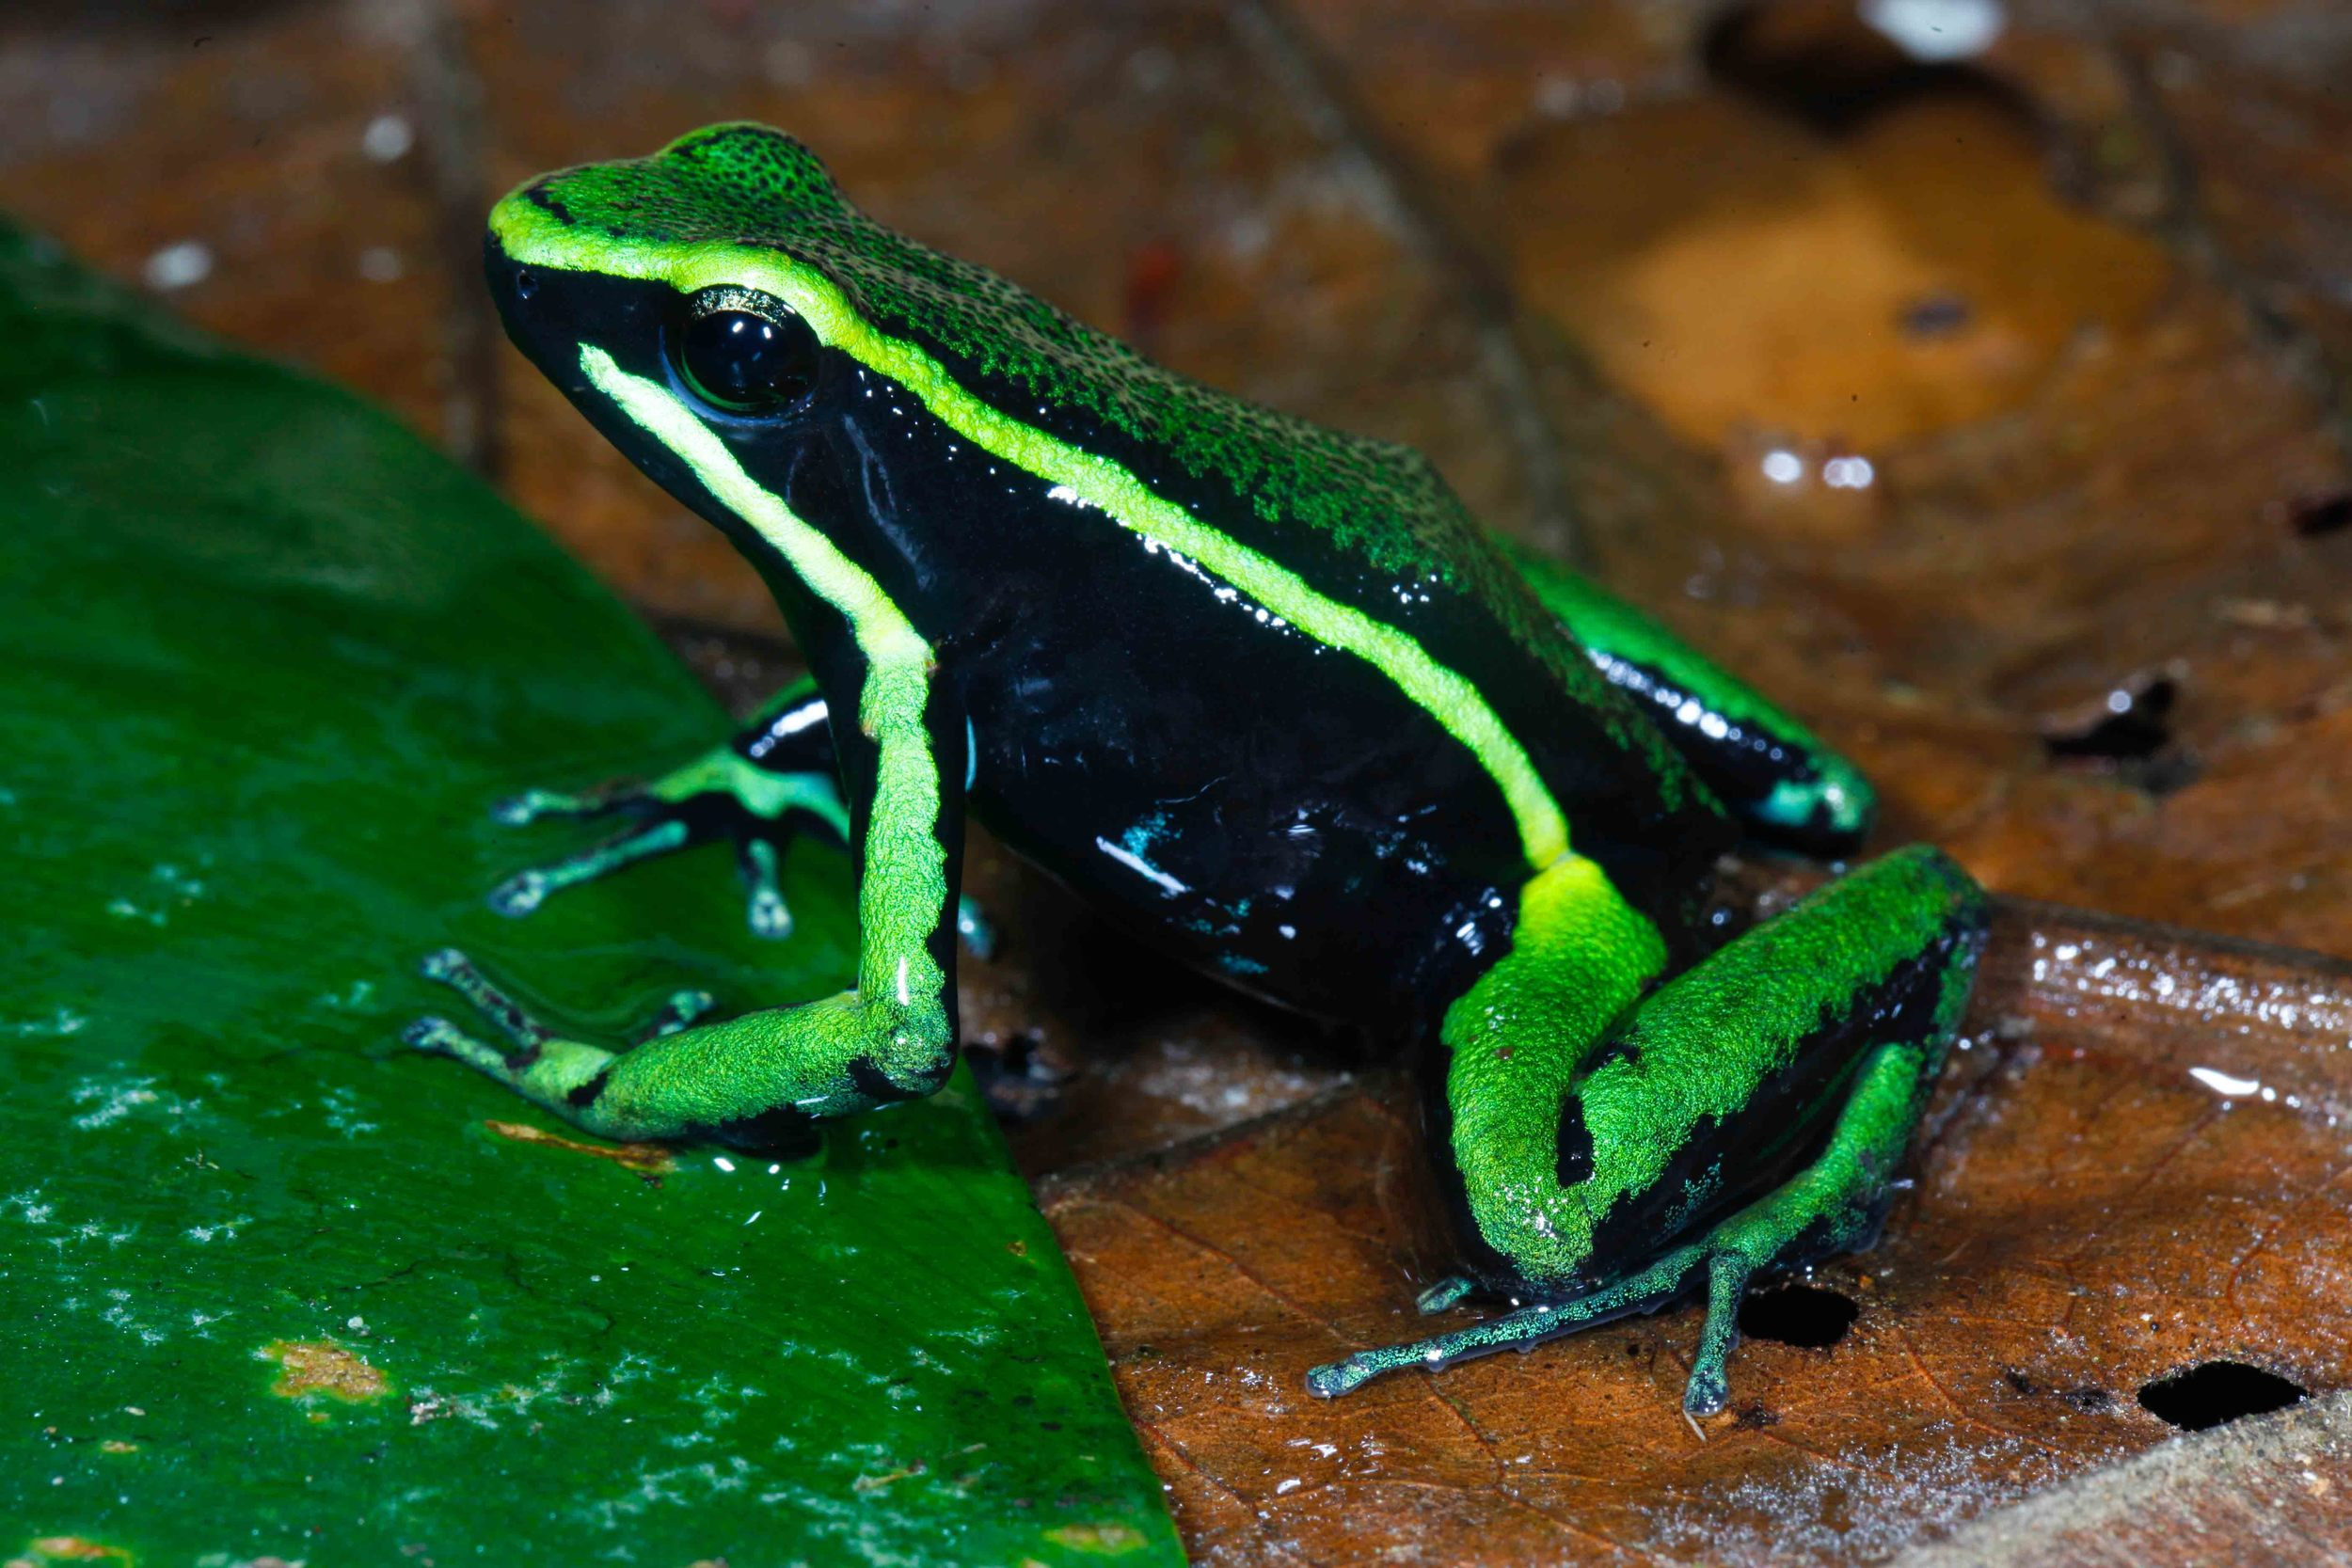 Ameerega trivittata, Three Striped Poison Frog (Photo by Matt Cage)